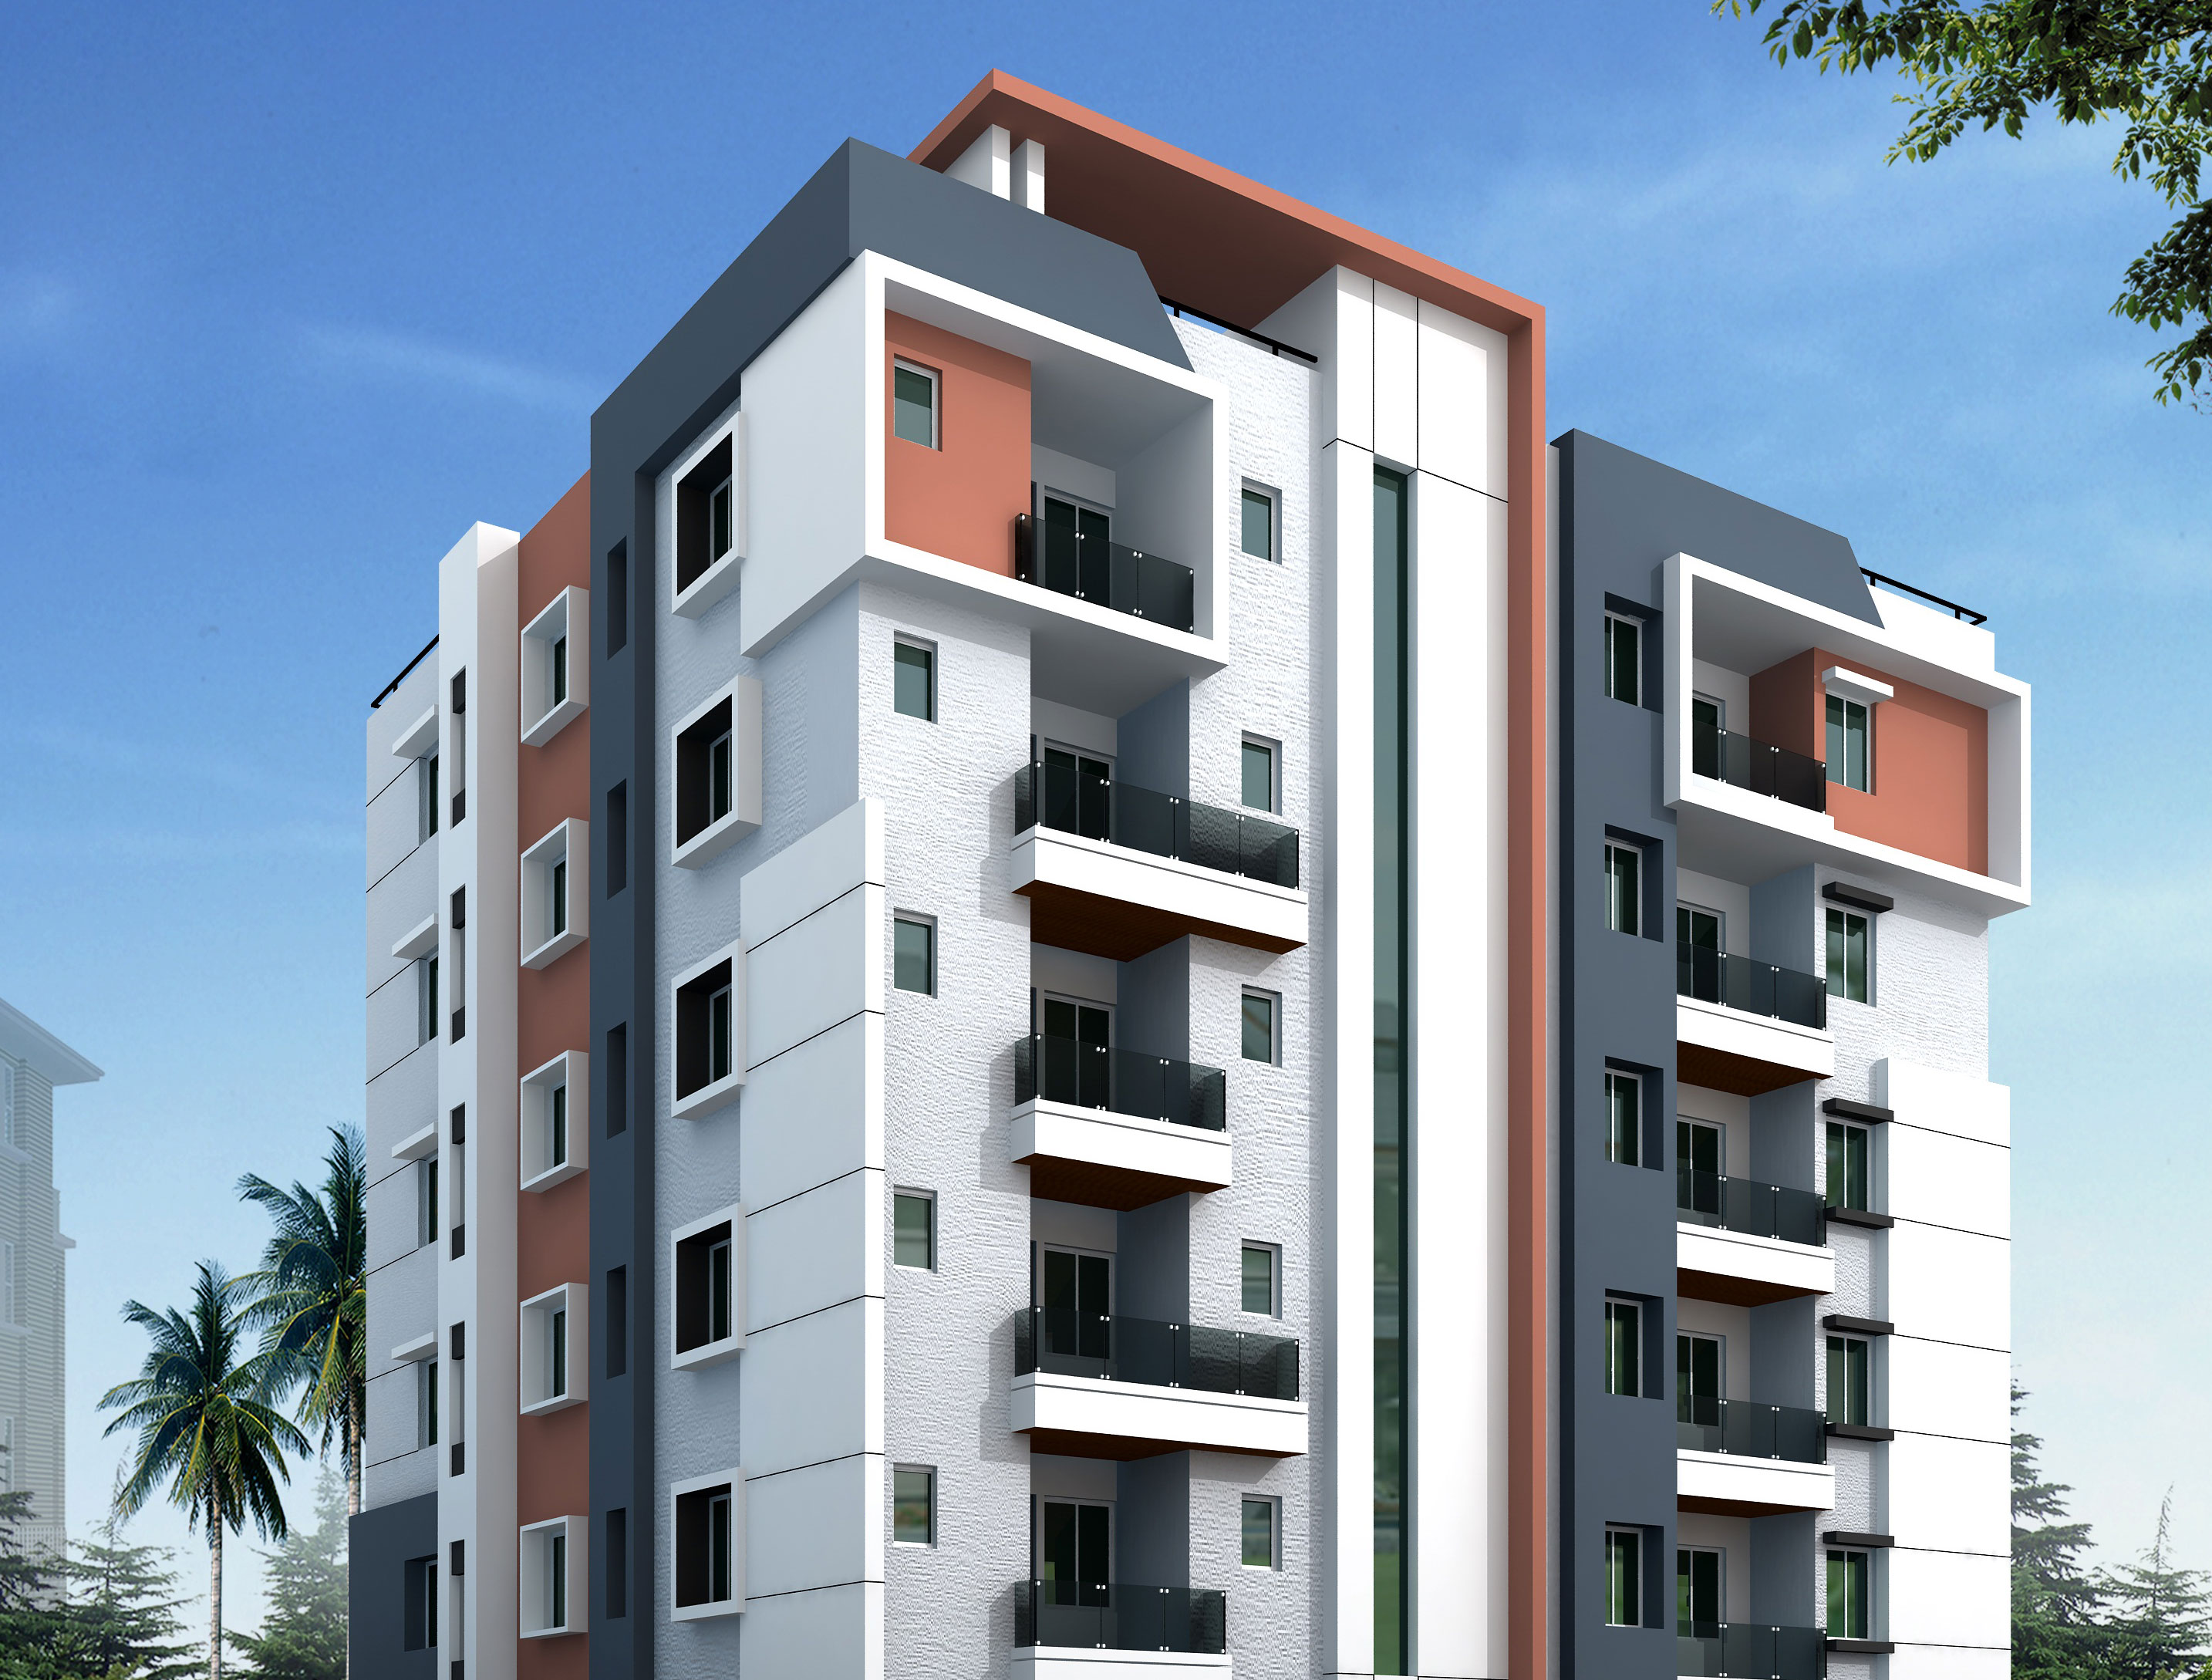 apartments for sale in pm palem vizag - real estate in pm palem